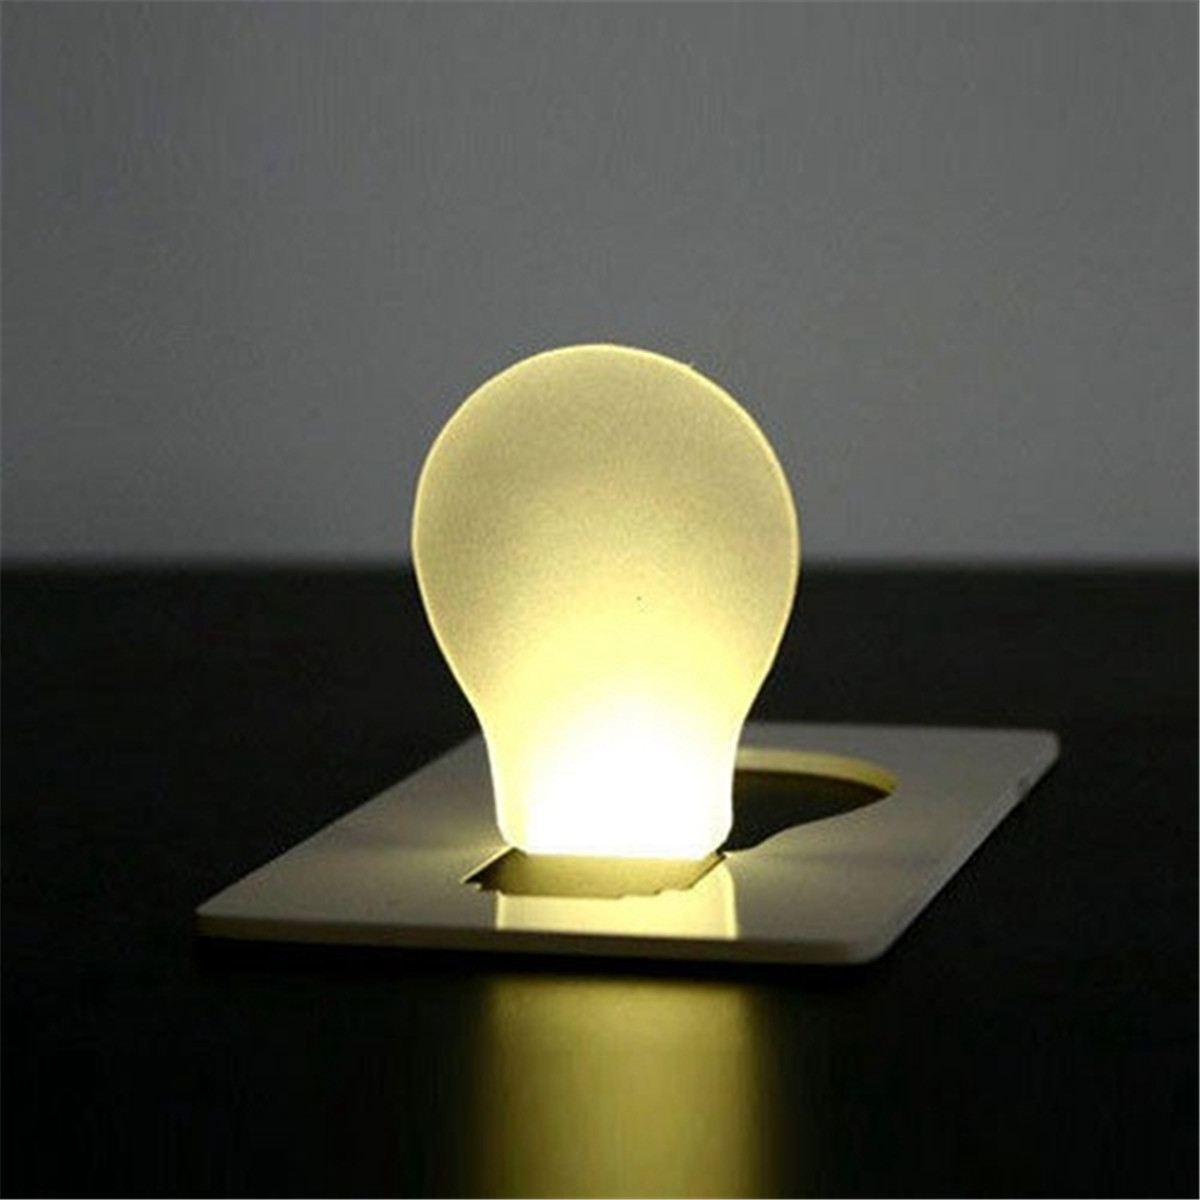 Smuxi Mini Wallet For Pocket Credit Card Size Portable LED Night Light Lamp Bulbs Cute Paper Card Flashlight(China)